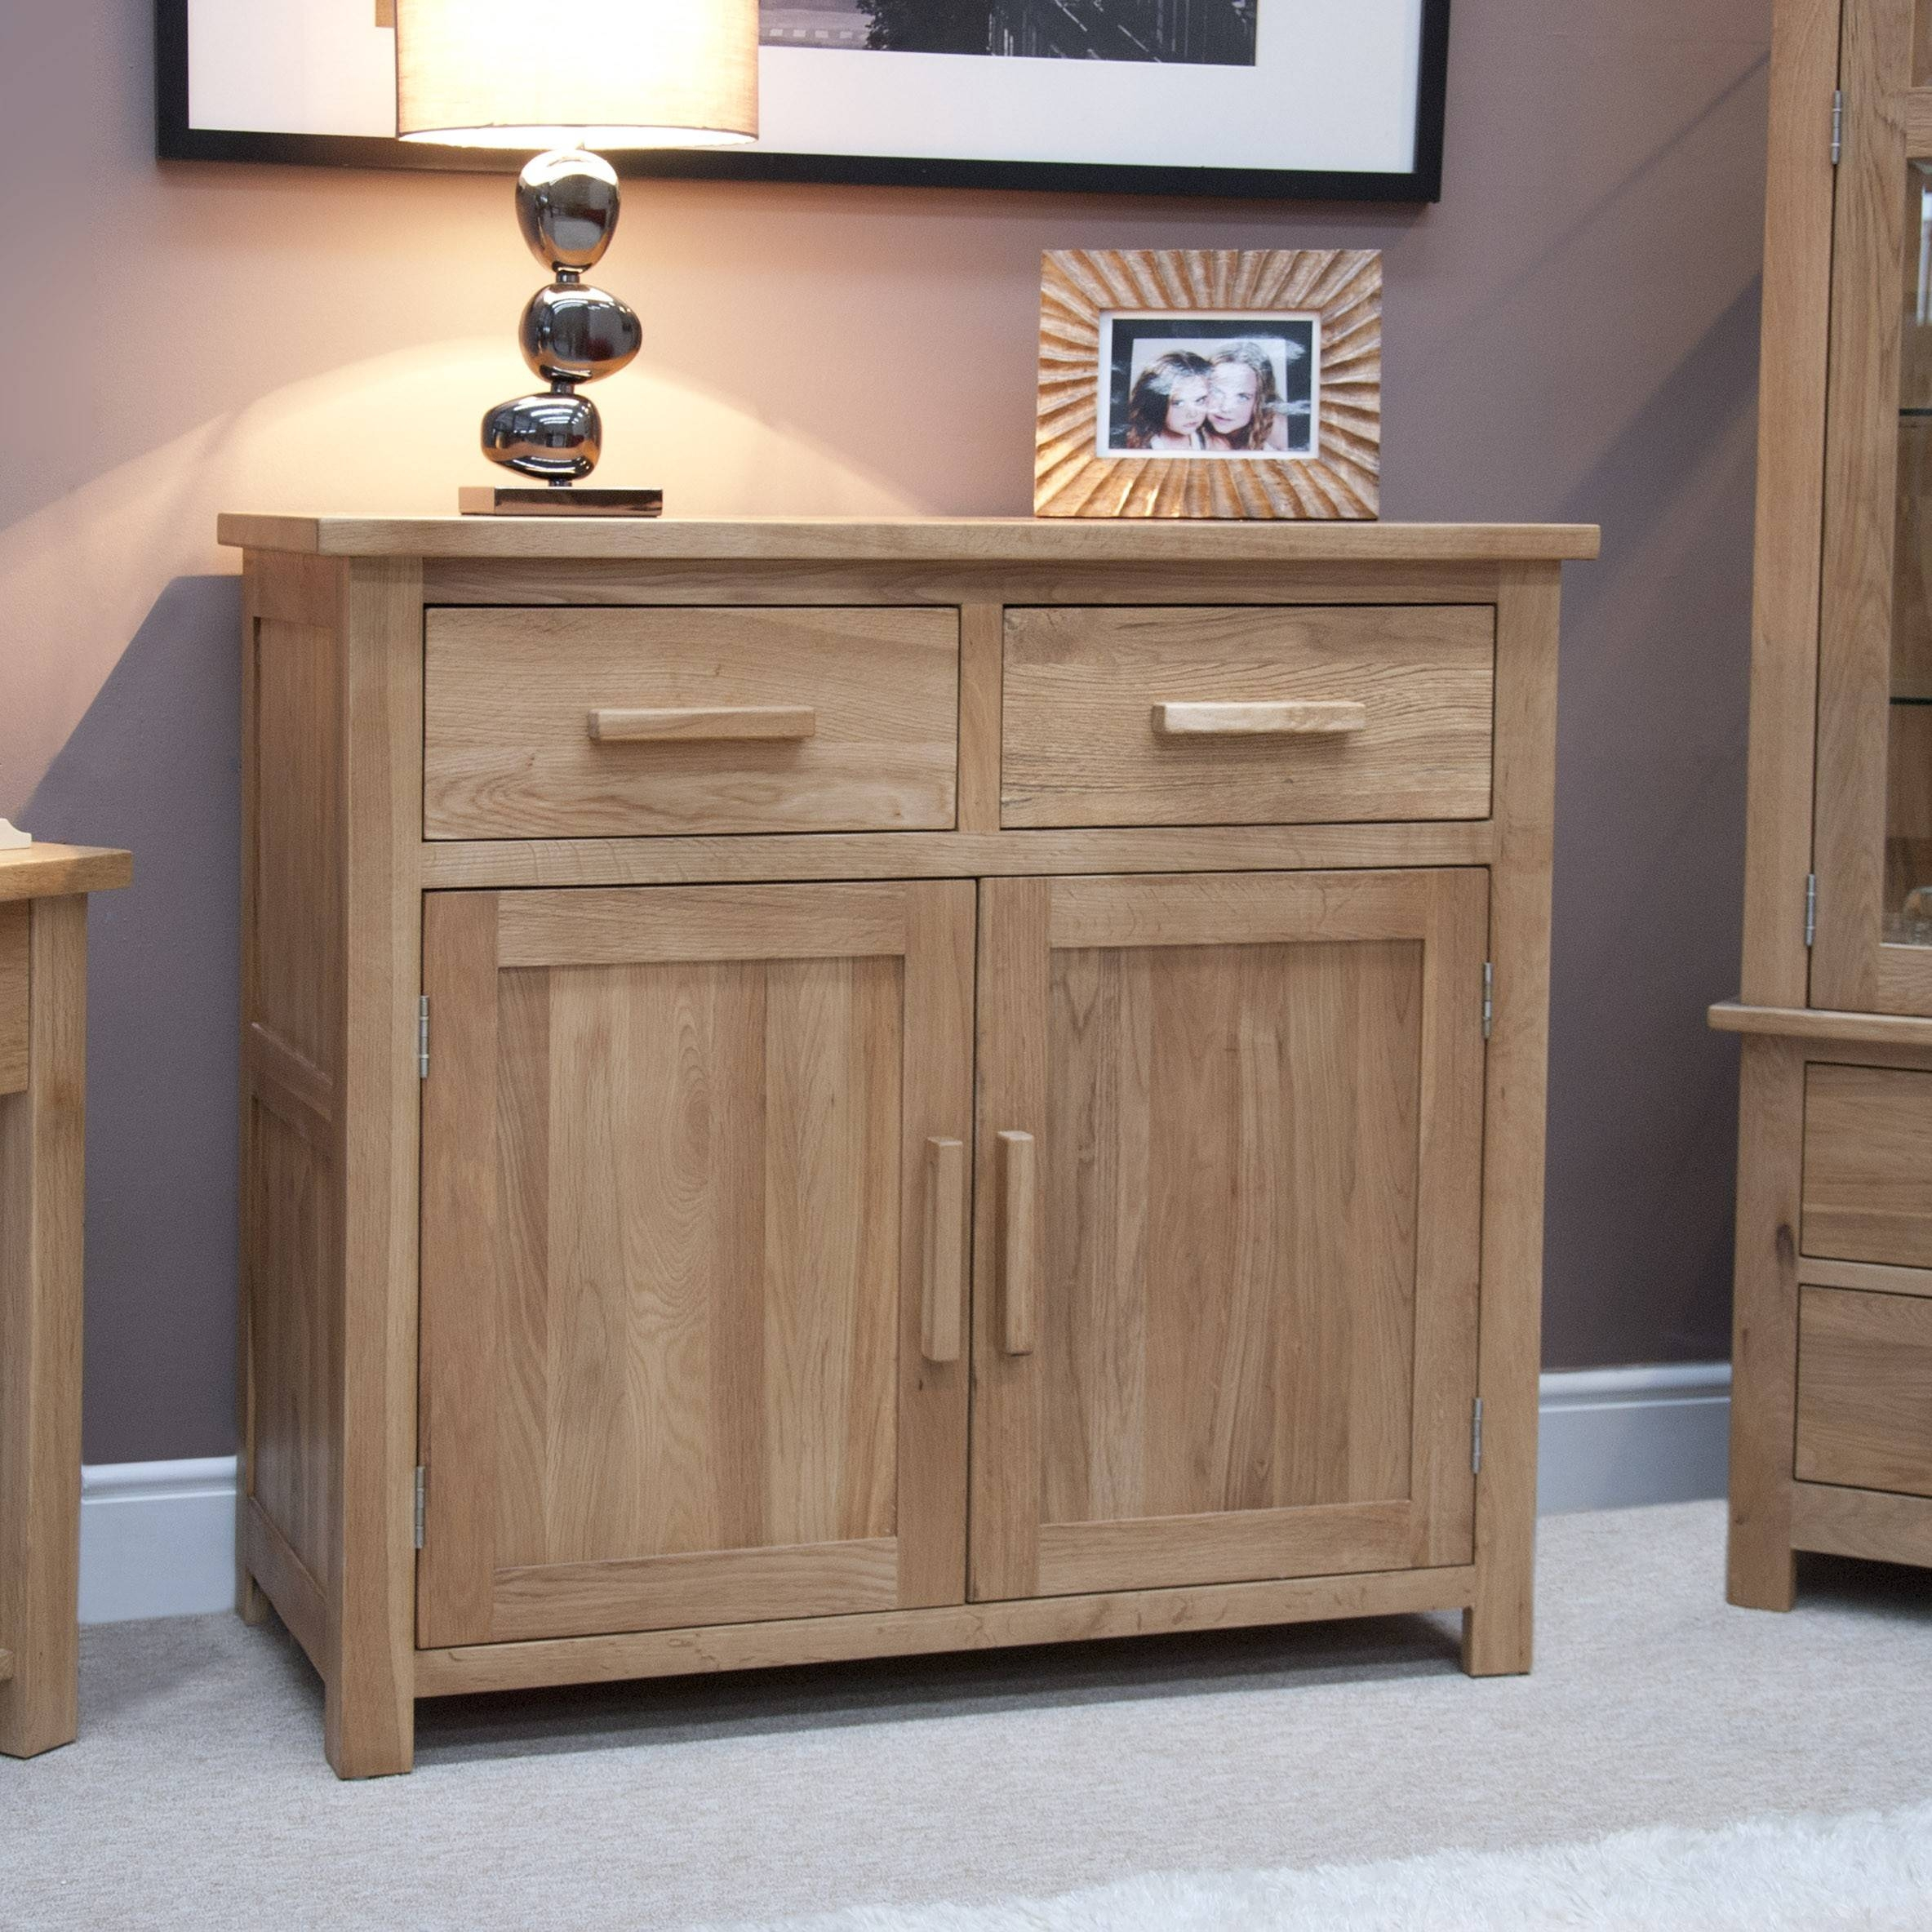 Opus Solid Oak Homestyle Furniture | Furniture4Yourhome within Narrow Oak Sideboards (Image 11 of 30)